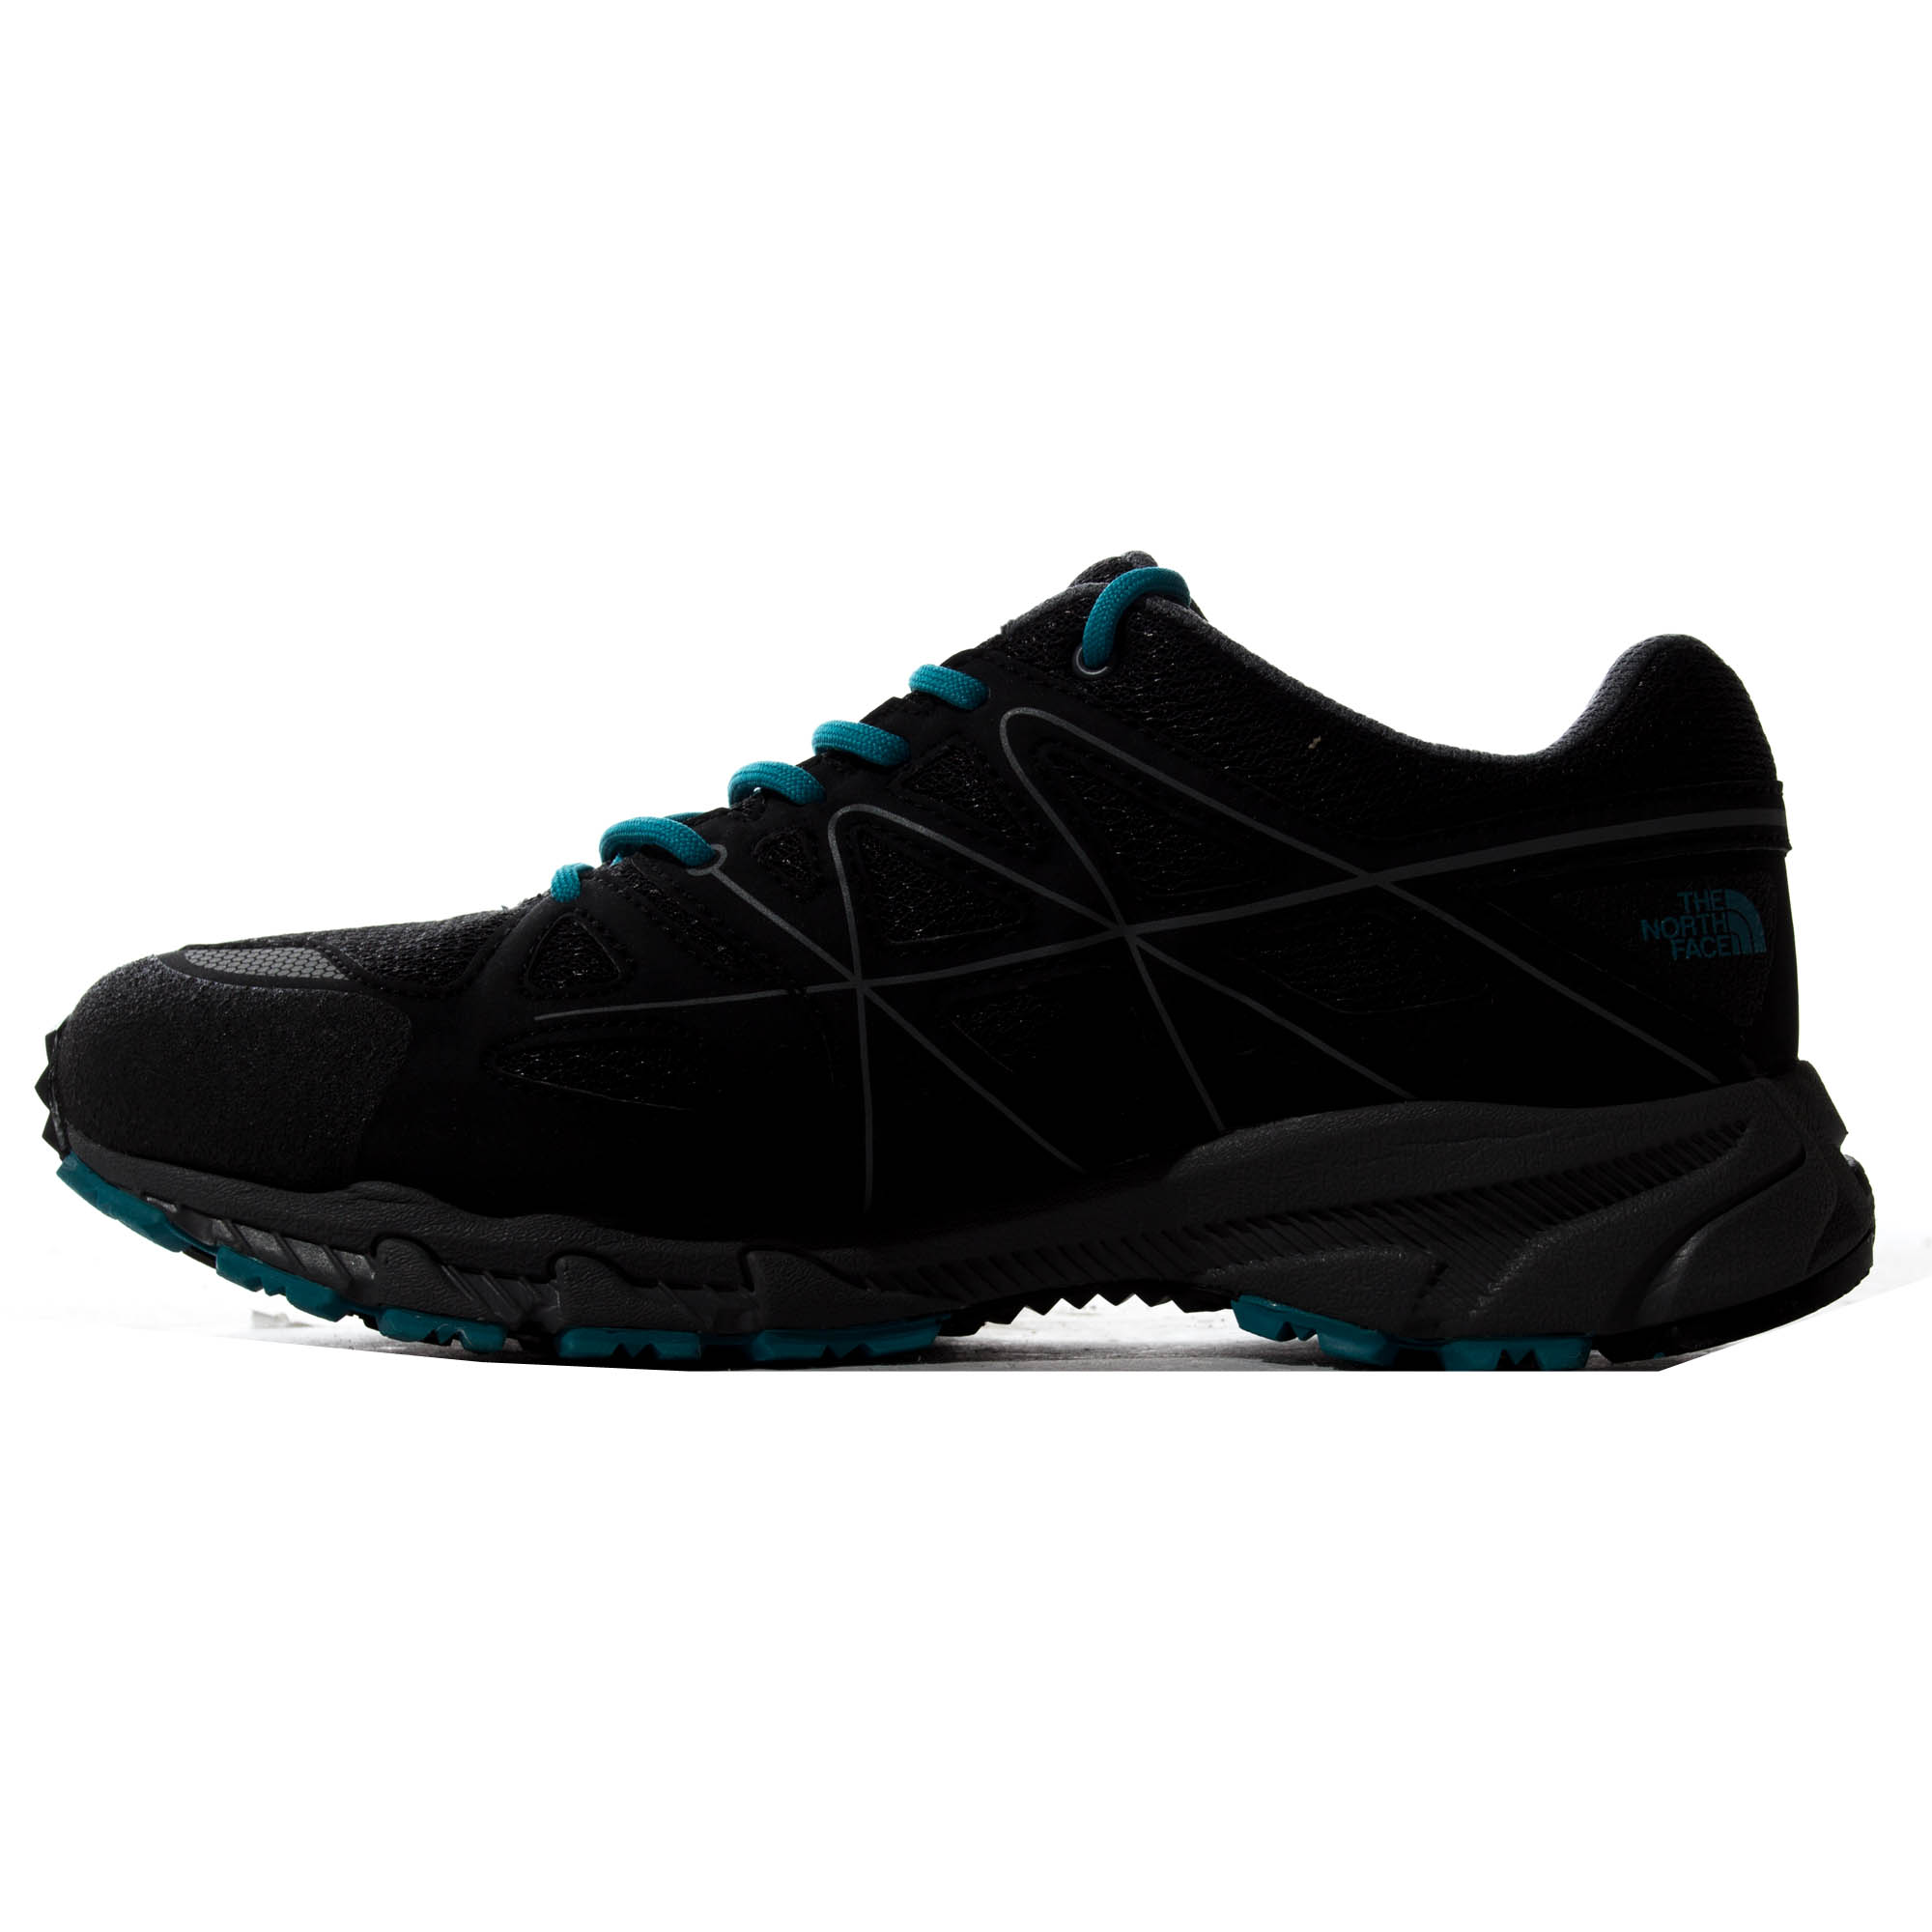 thumbnail 8 - The North Face Storm Gore-Tex Mens Outdoor Walking Hiking Shoe Black/Blue